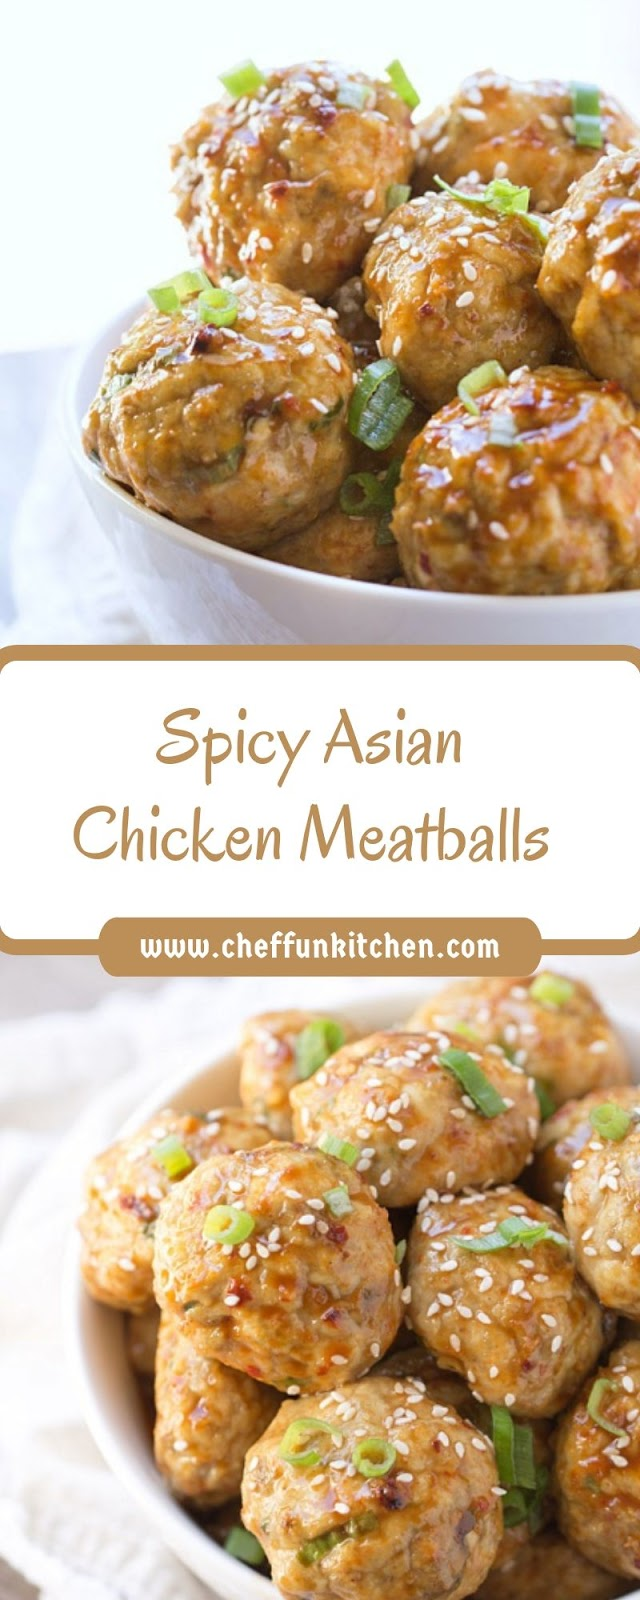 Spicy Asian Chicken Meatballs